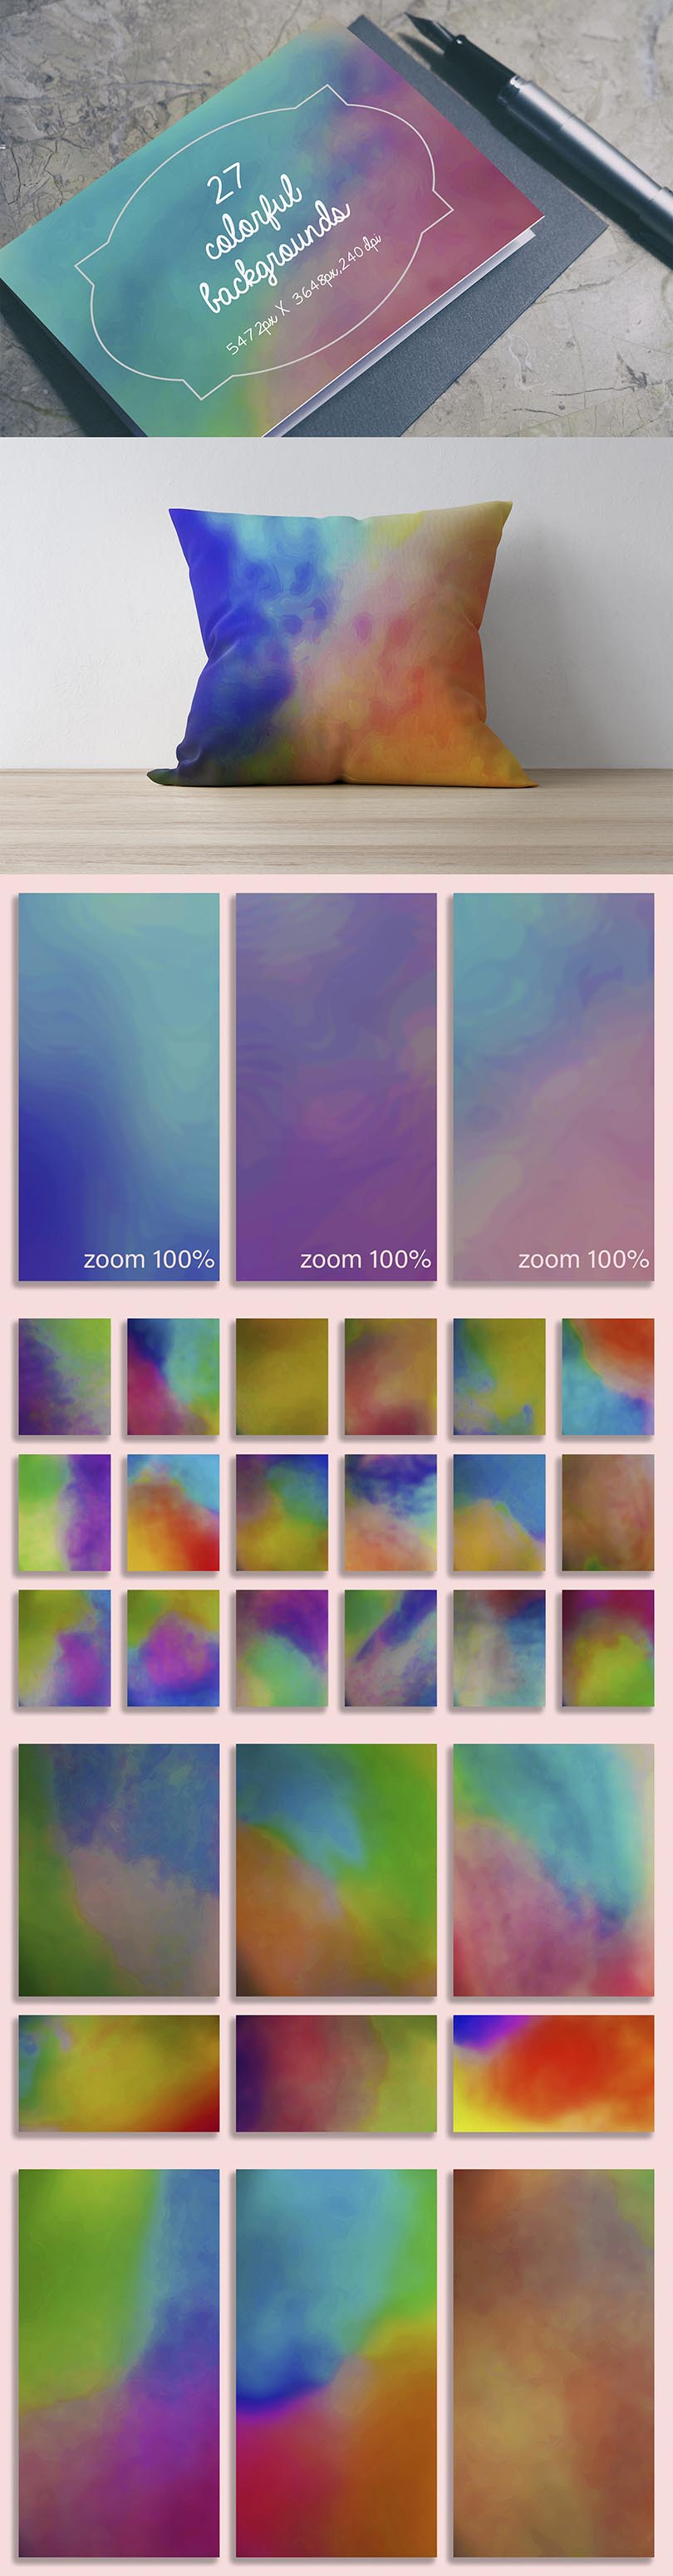 Digital Art Collection - $29 ONLY - Colorful Overlays